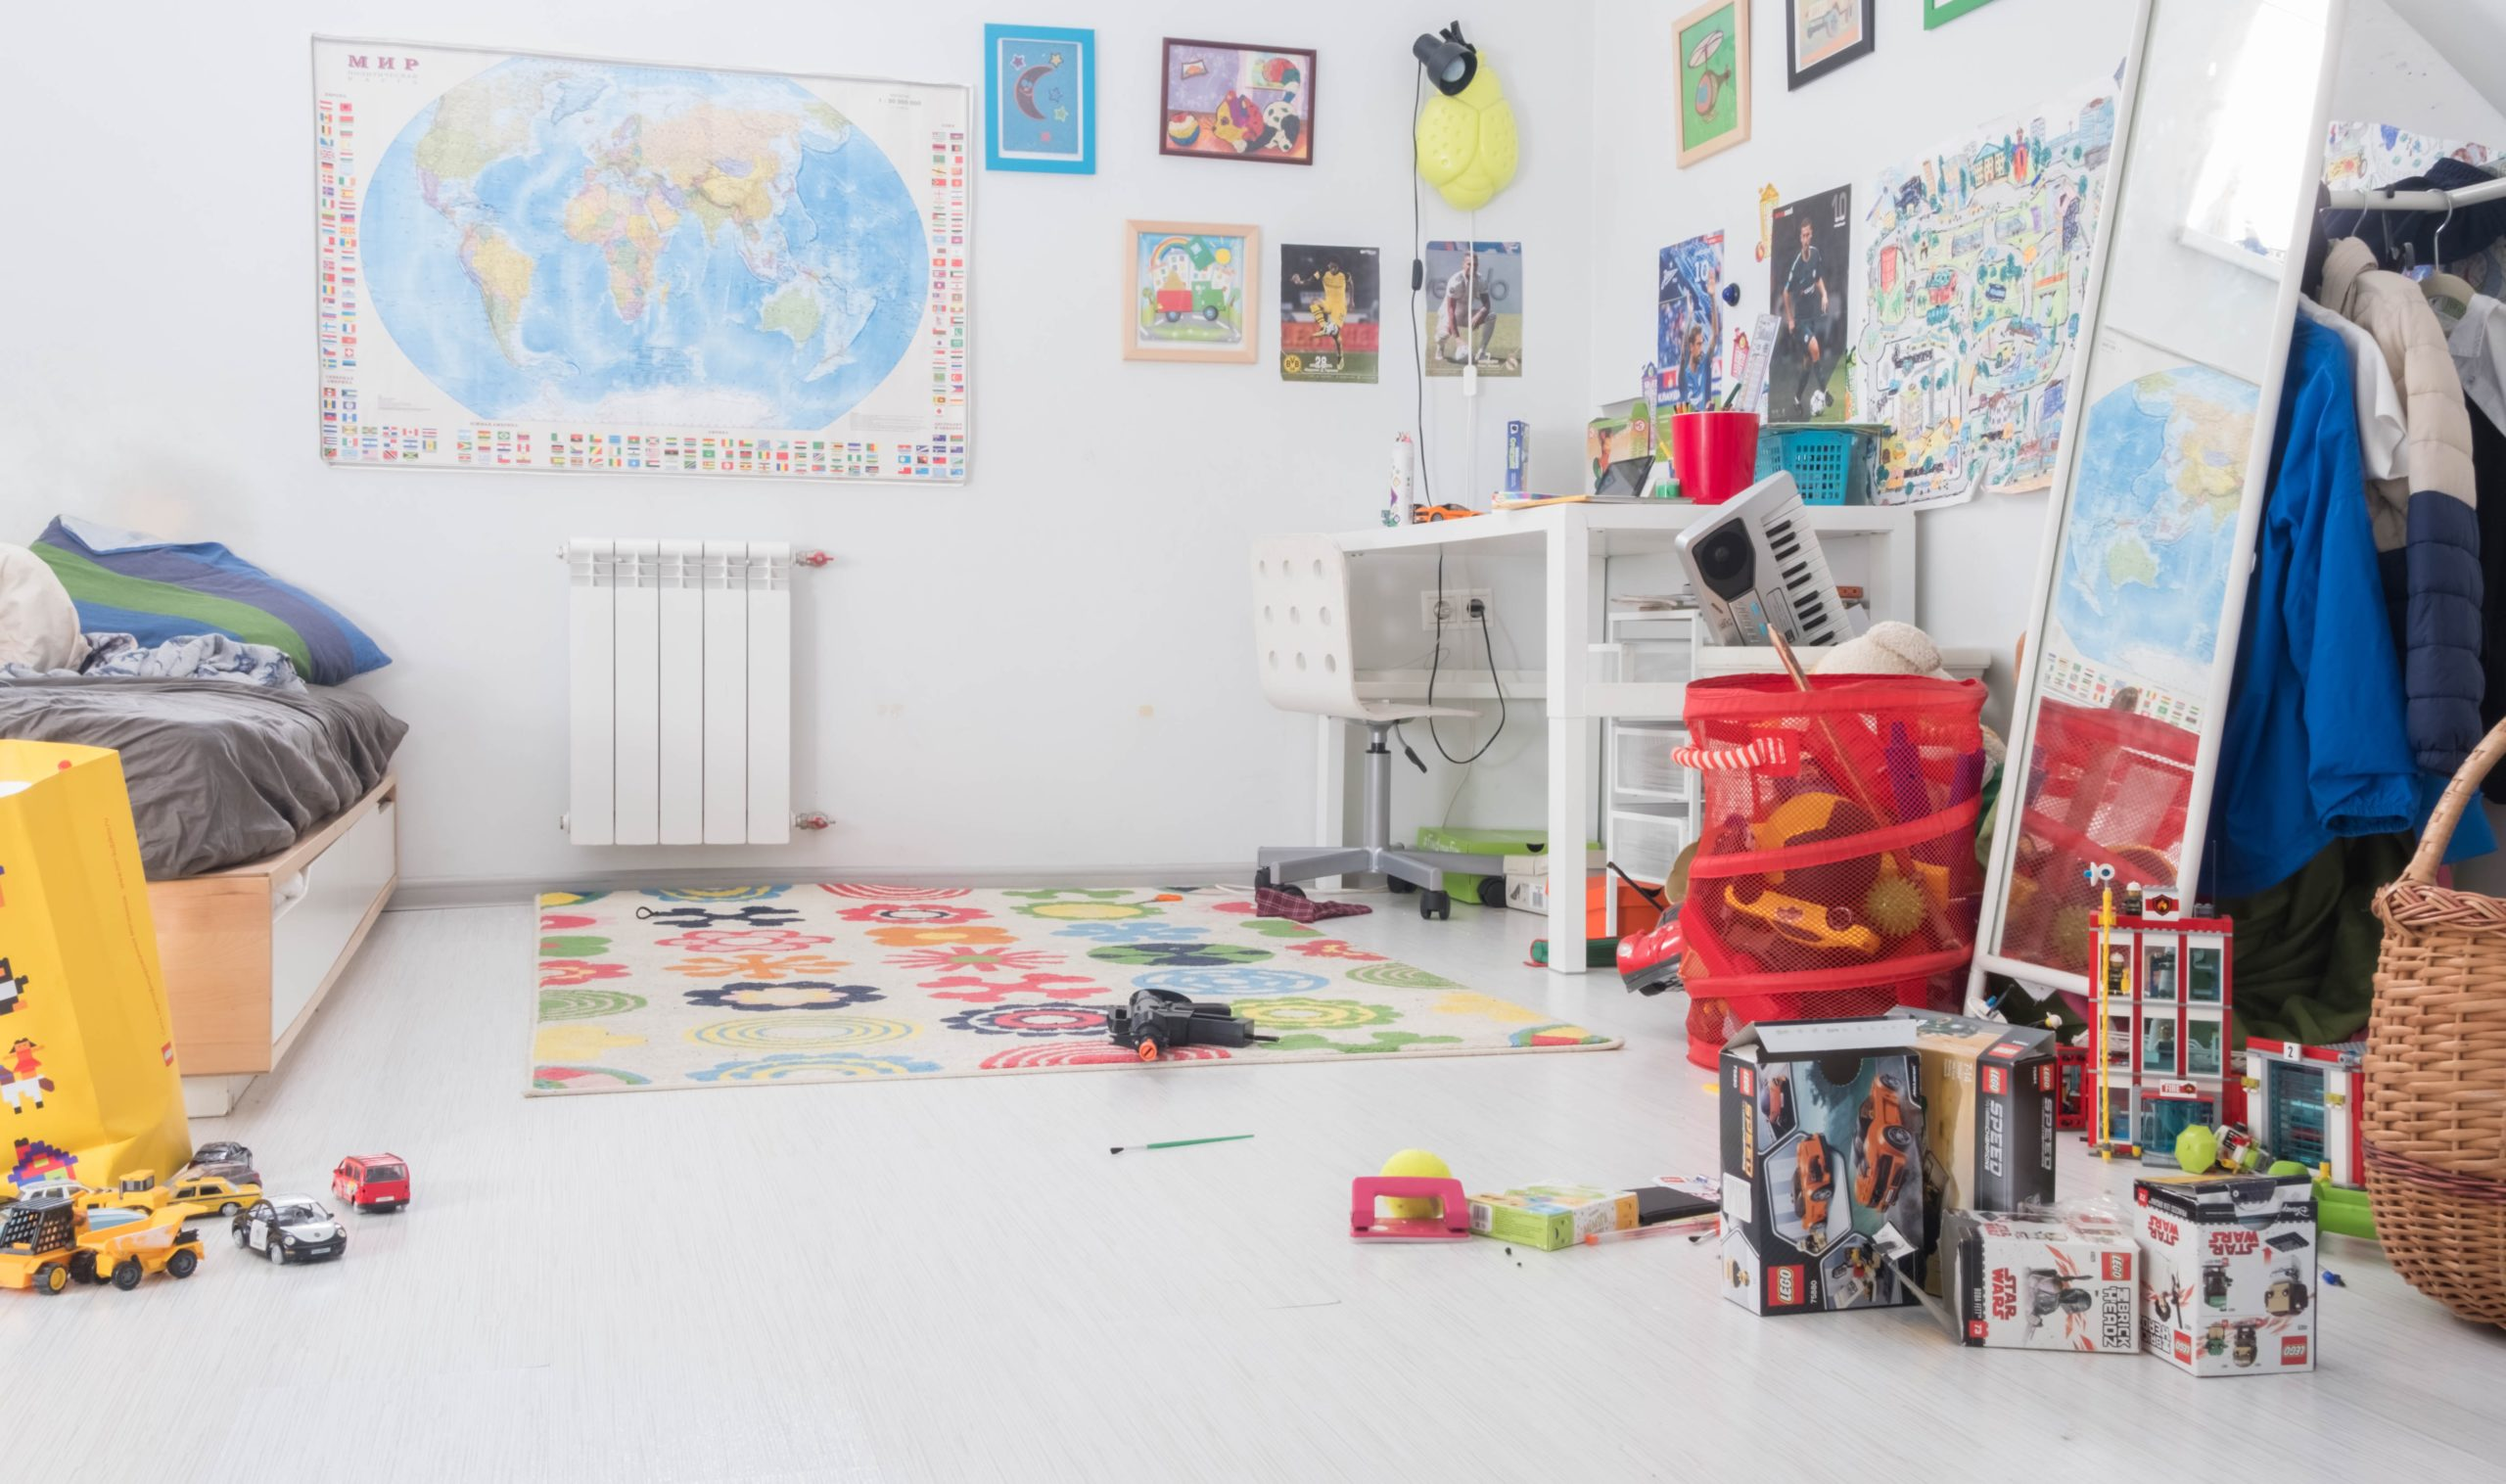 Kids play room with toys on the floor